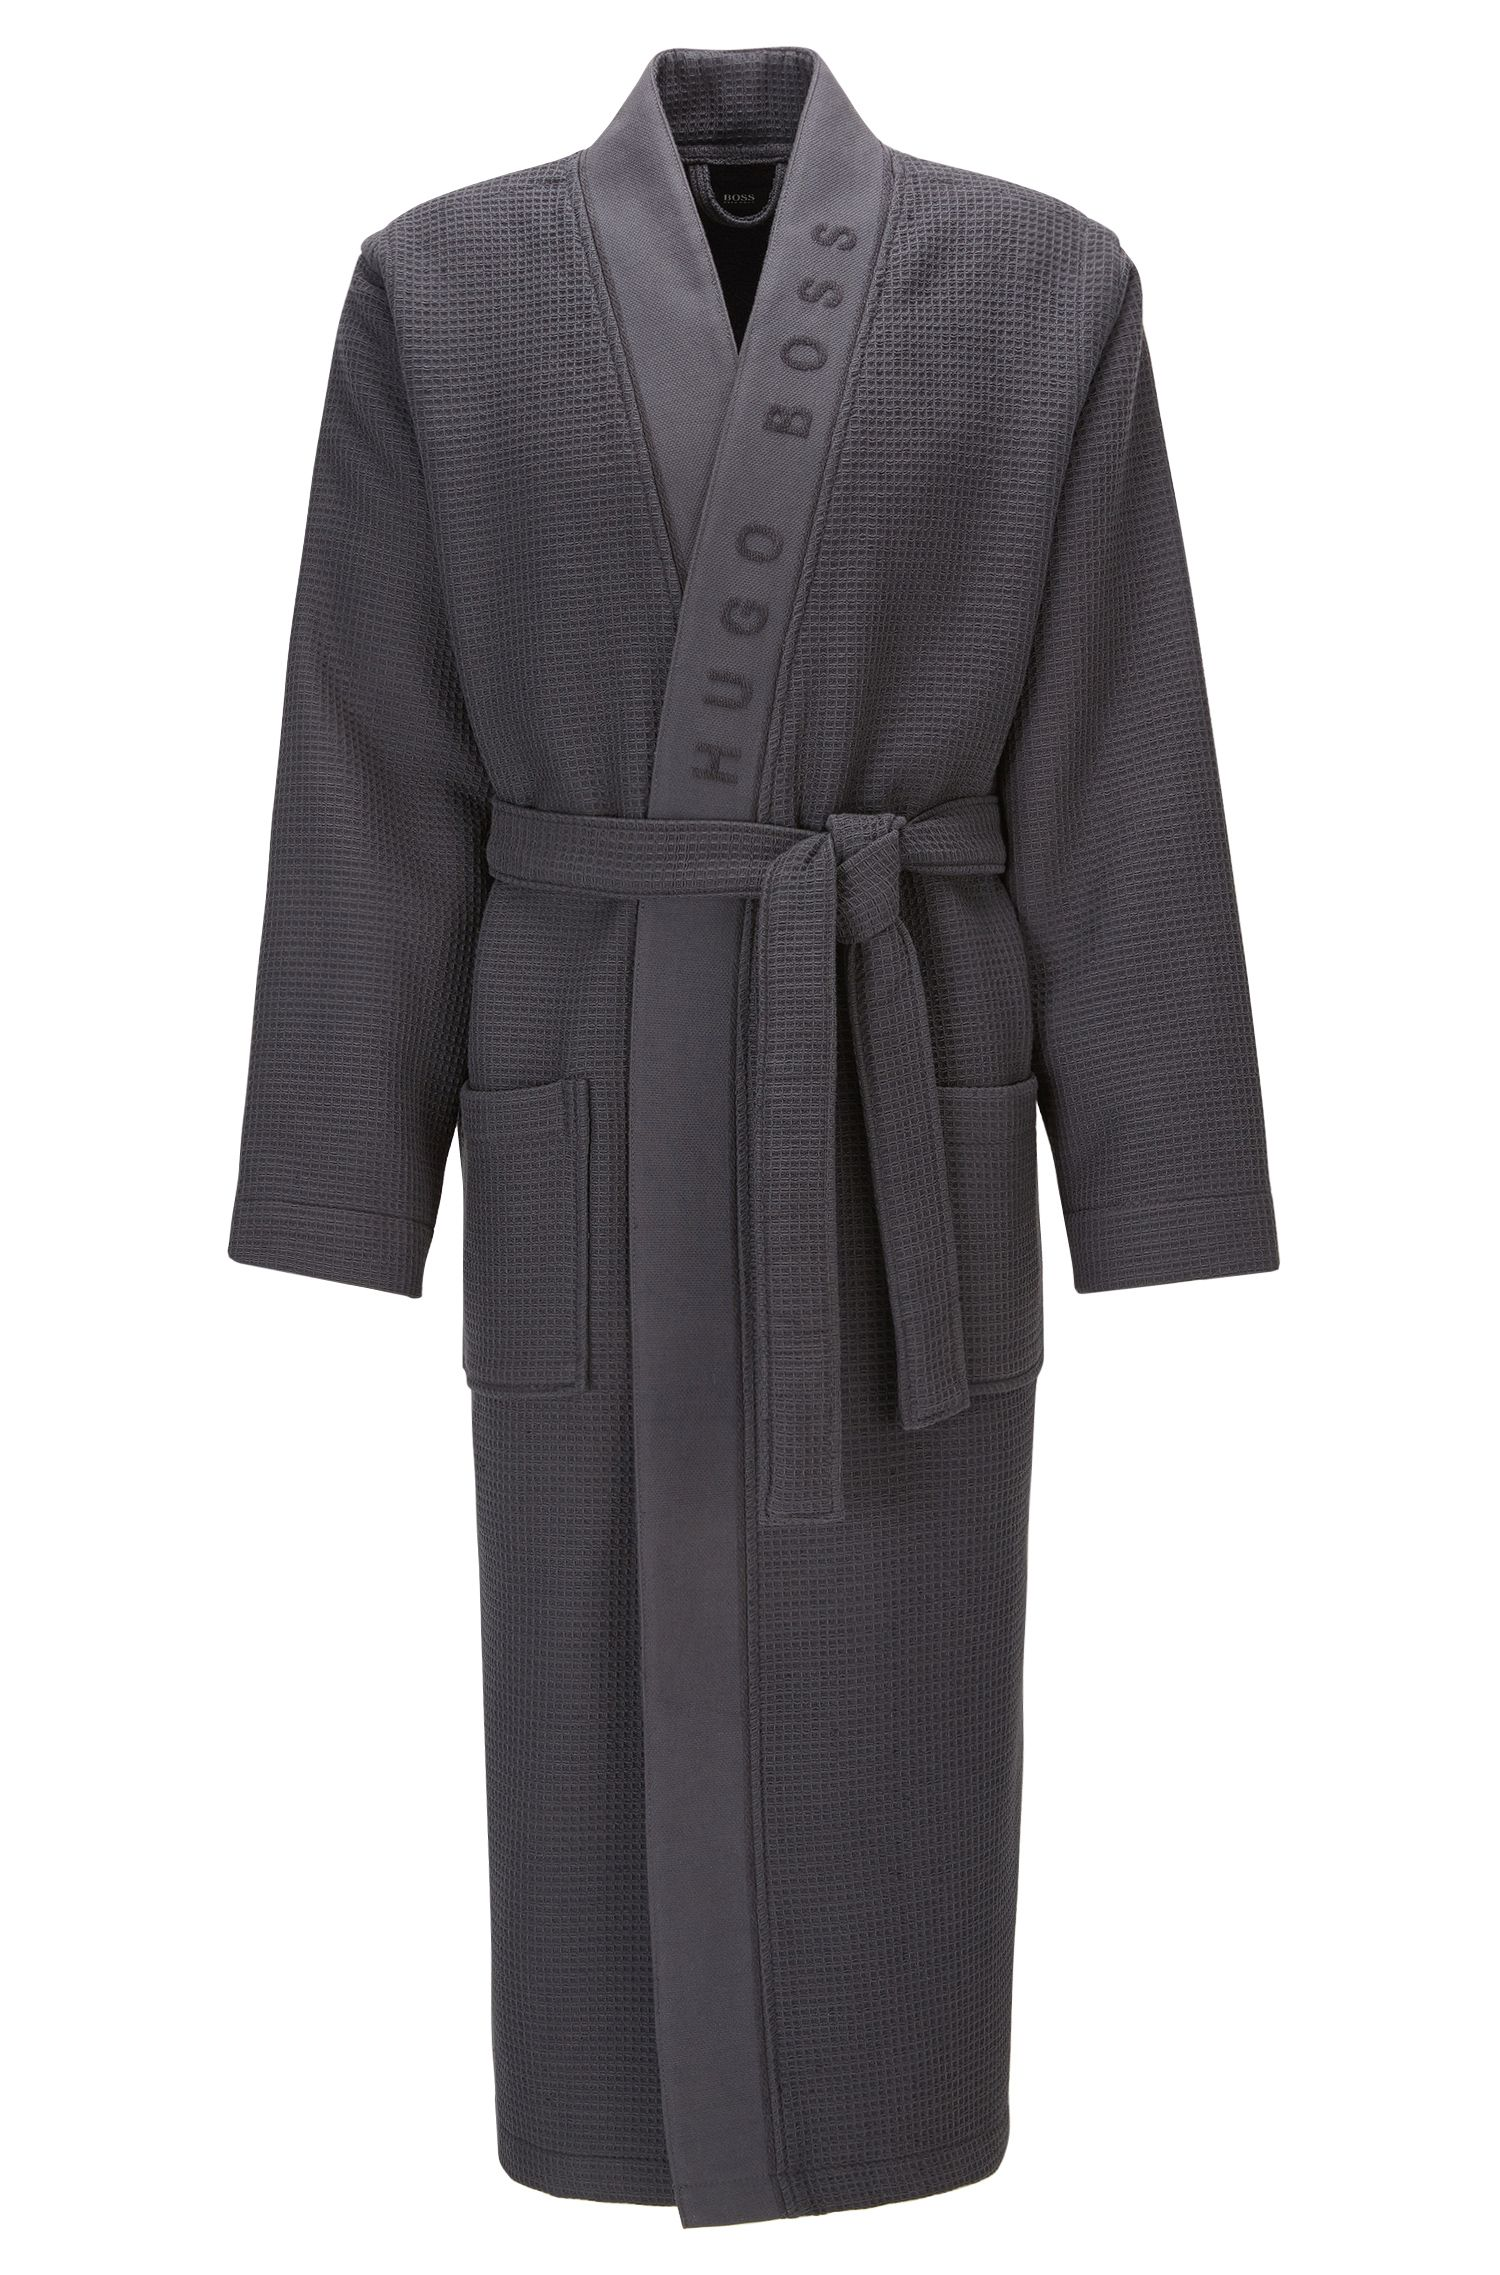 Dressing gown in structured fabric